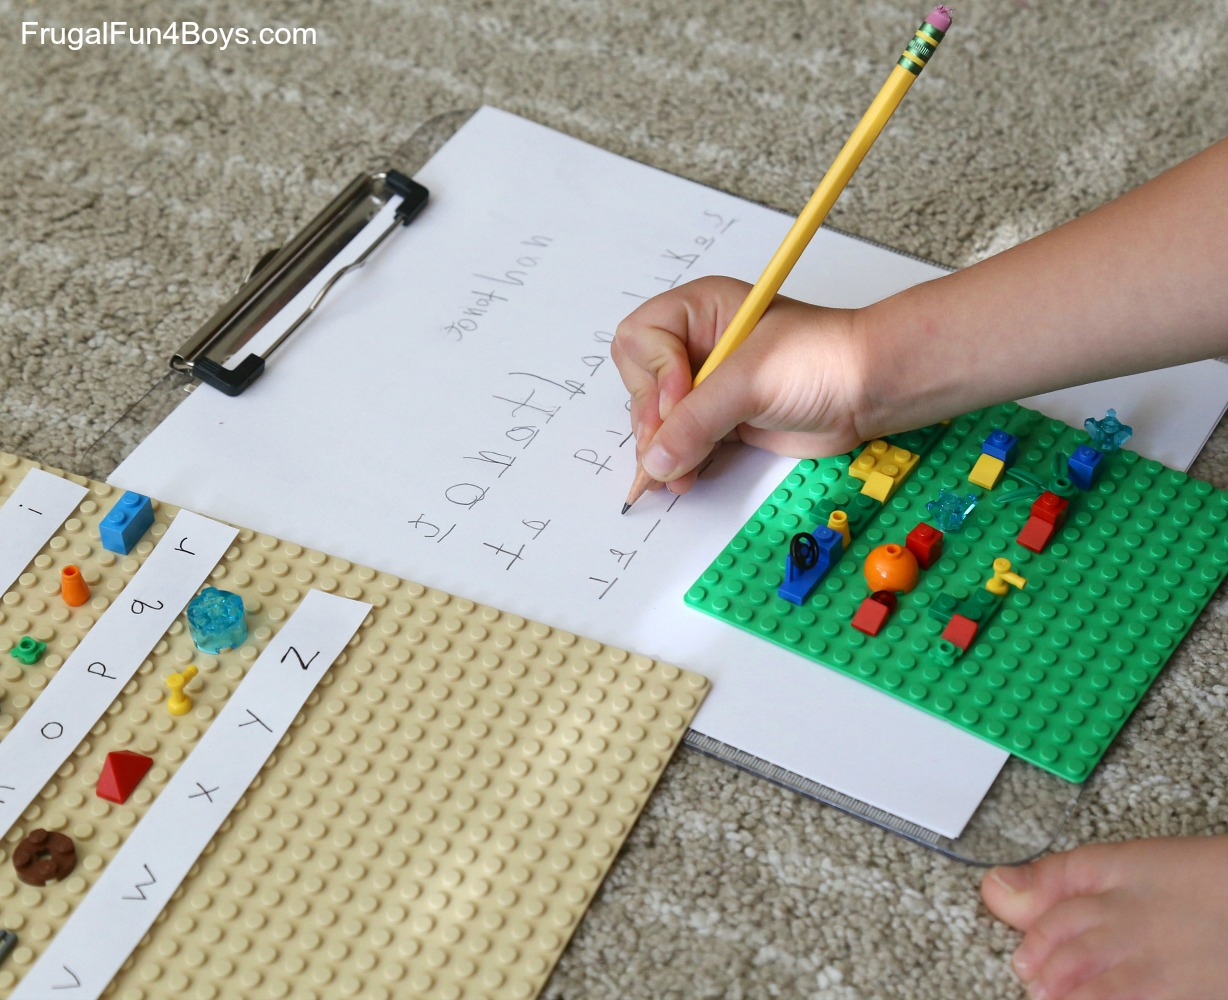 Secret Codes Write Coded Messages With Lego Bricks